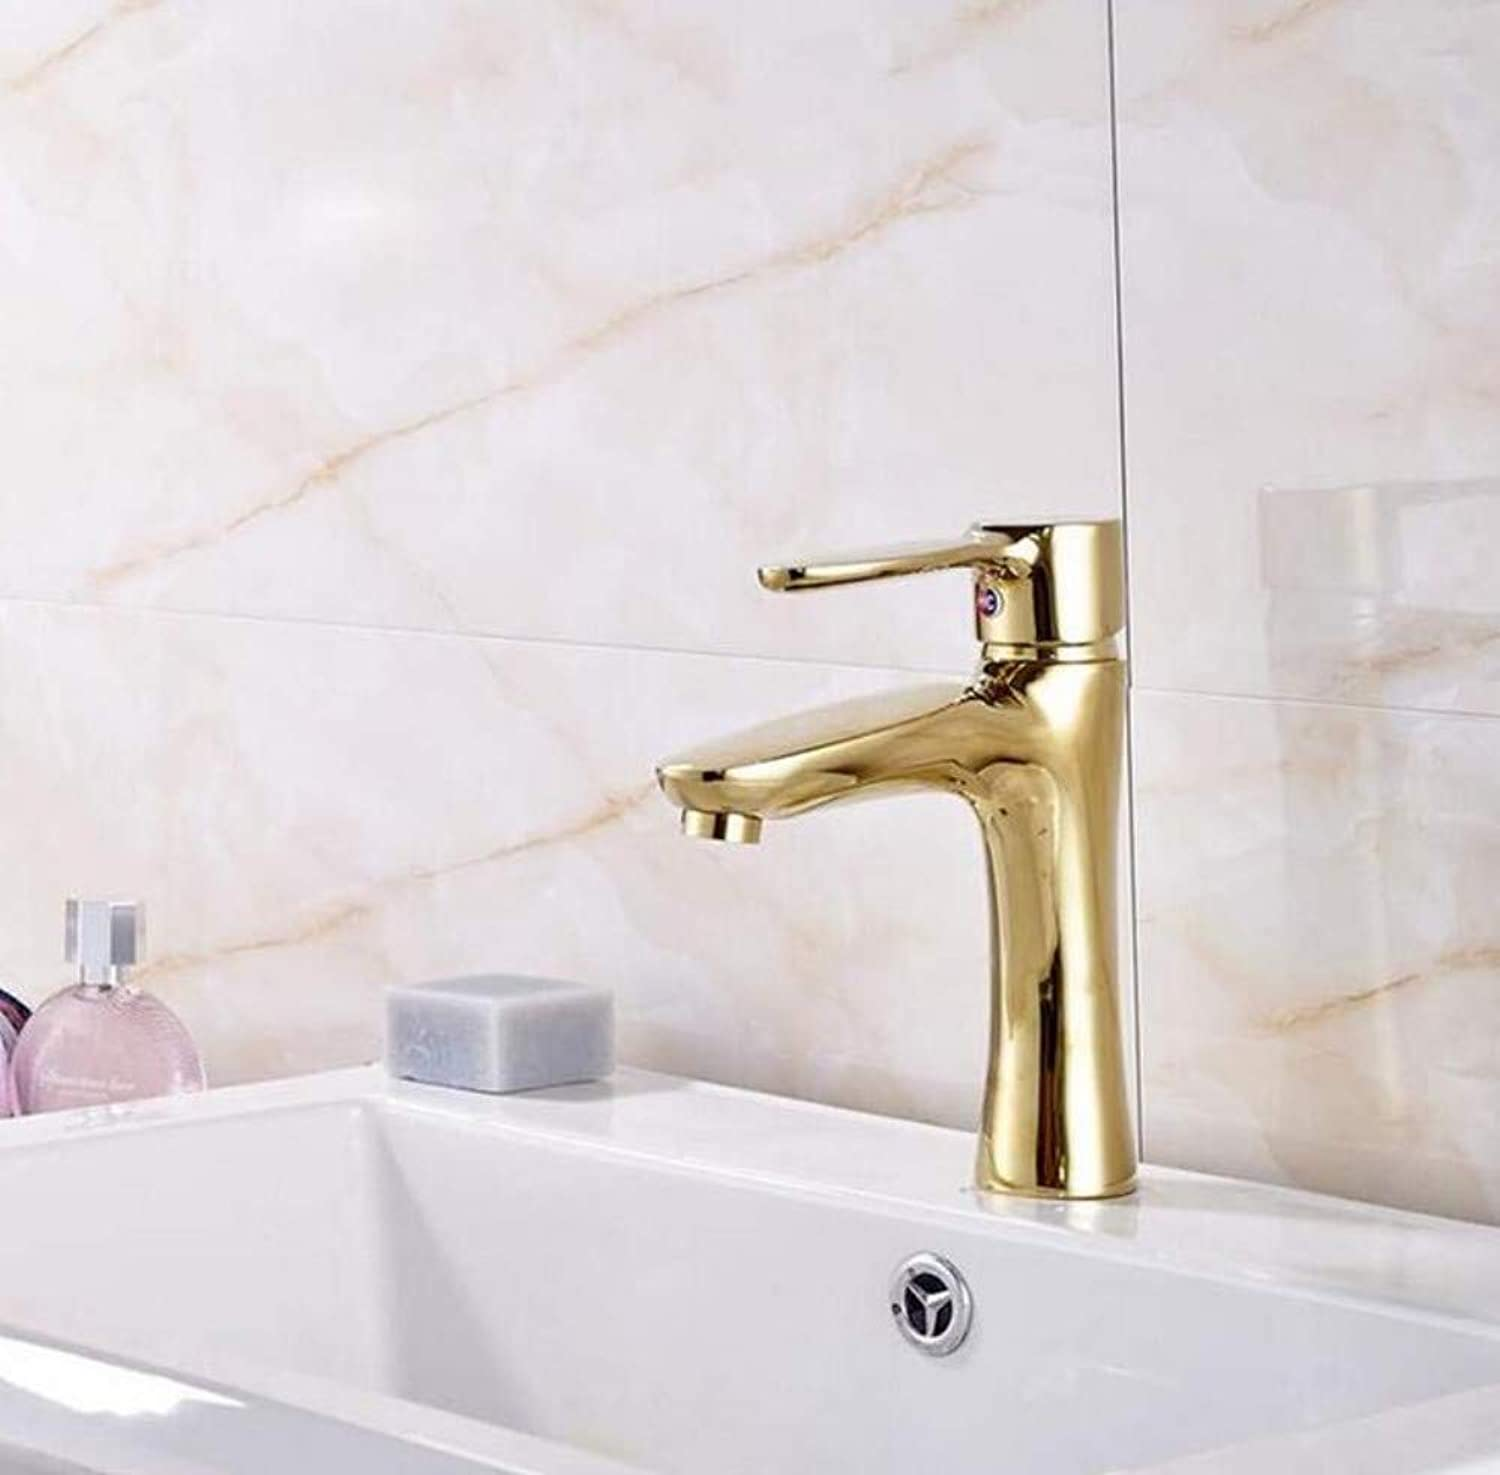 Brass Wall Faucet Chrome Brass Faucetmixer gold Polished Deck Mounted Bathroom Sink Faucet Countertop Hot and Cold Water Mixer Tap with Cover Plate